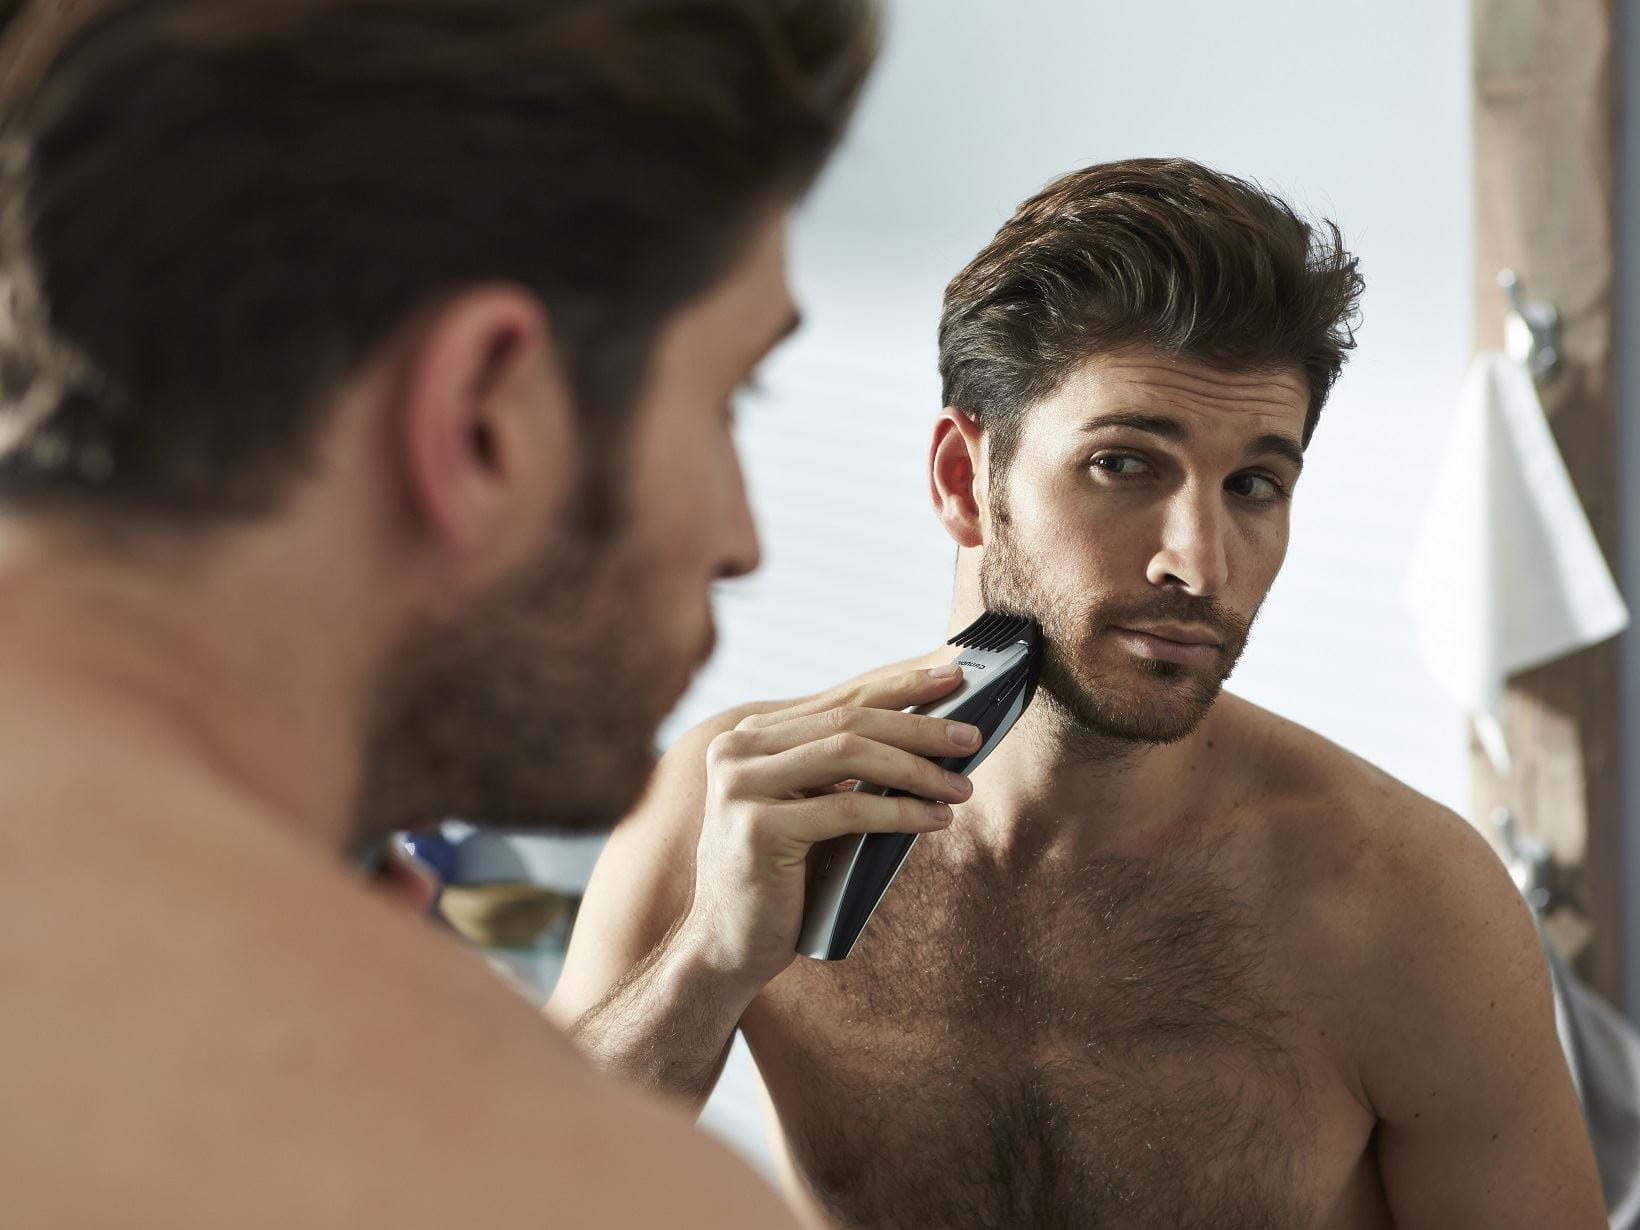 man shaping his 5 o'clock shadow in the mirror